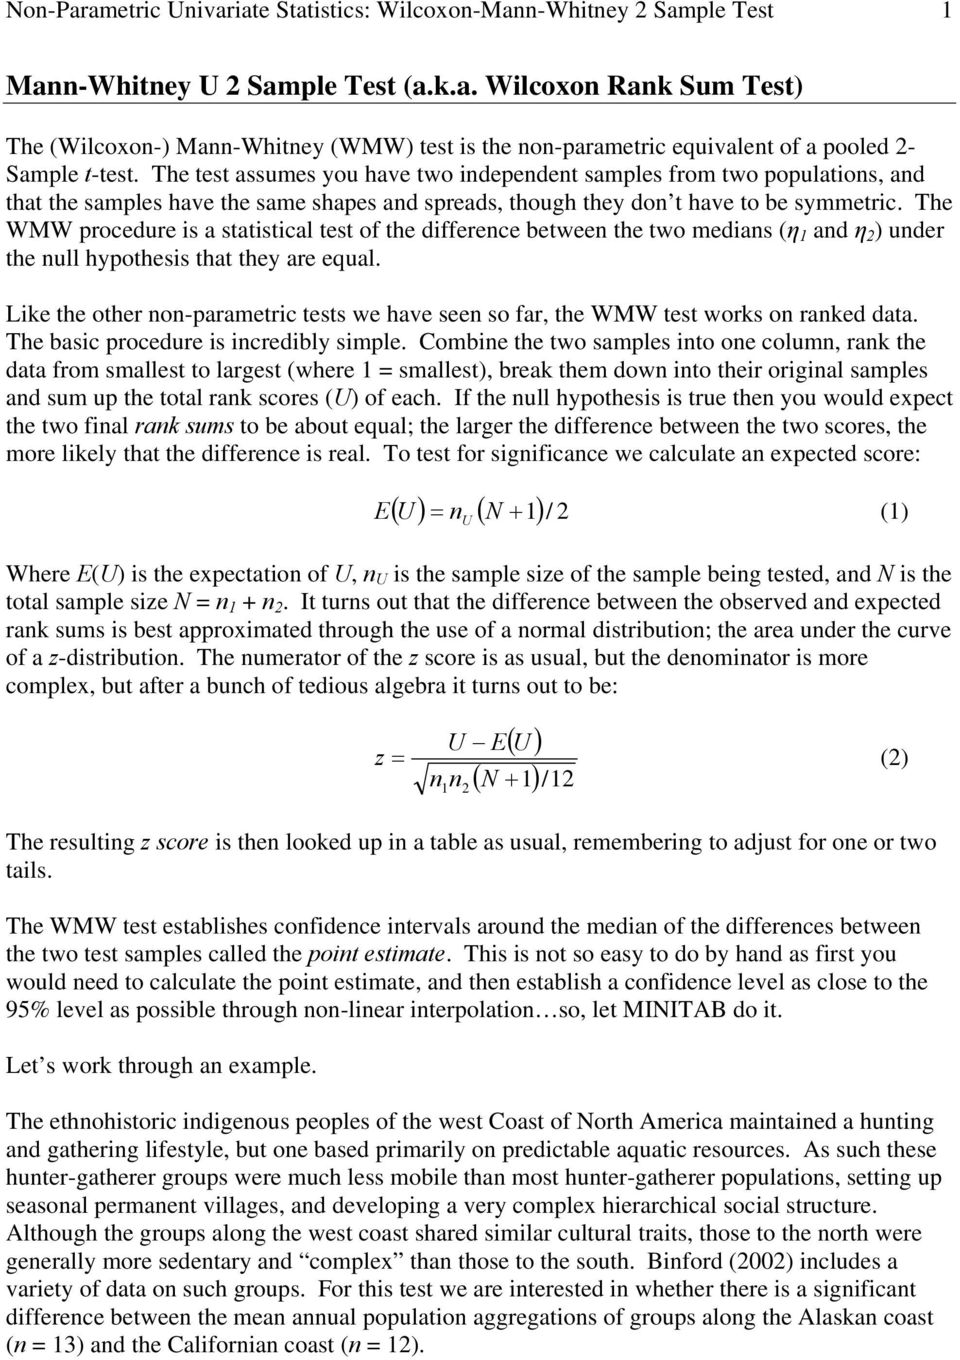 The WMW procedure is a statistical test of the differece betwee the two medias (η 1 ad η 2 ) uder the ull hypothesis that they are equal.